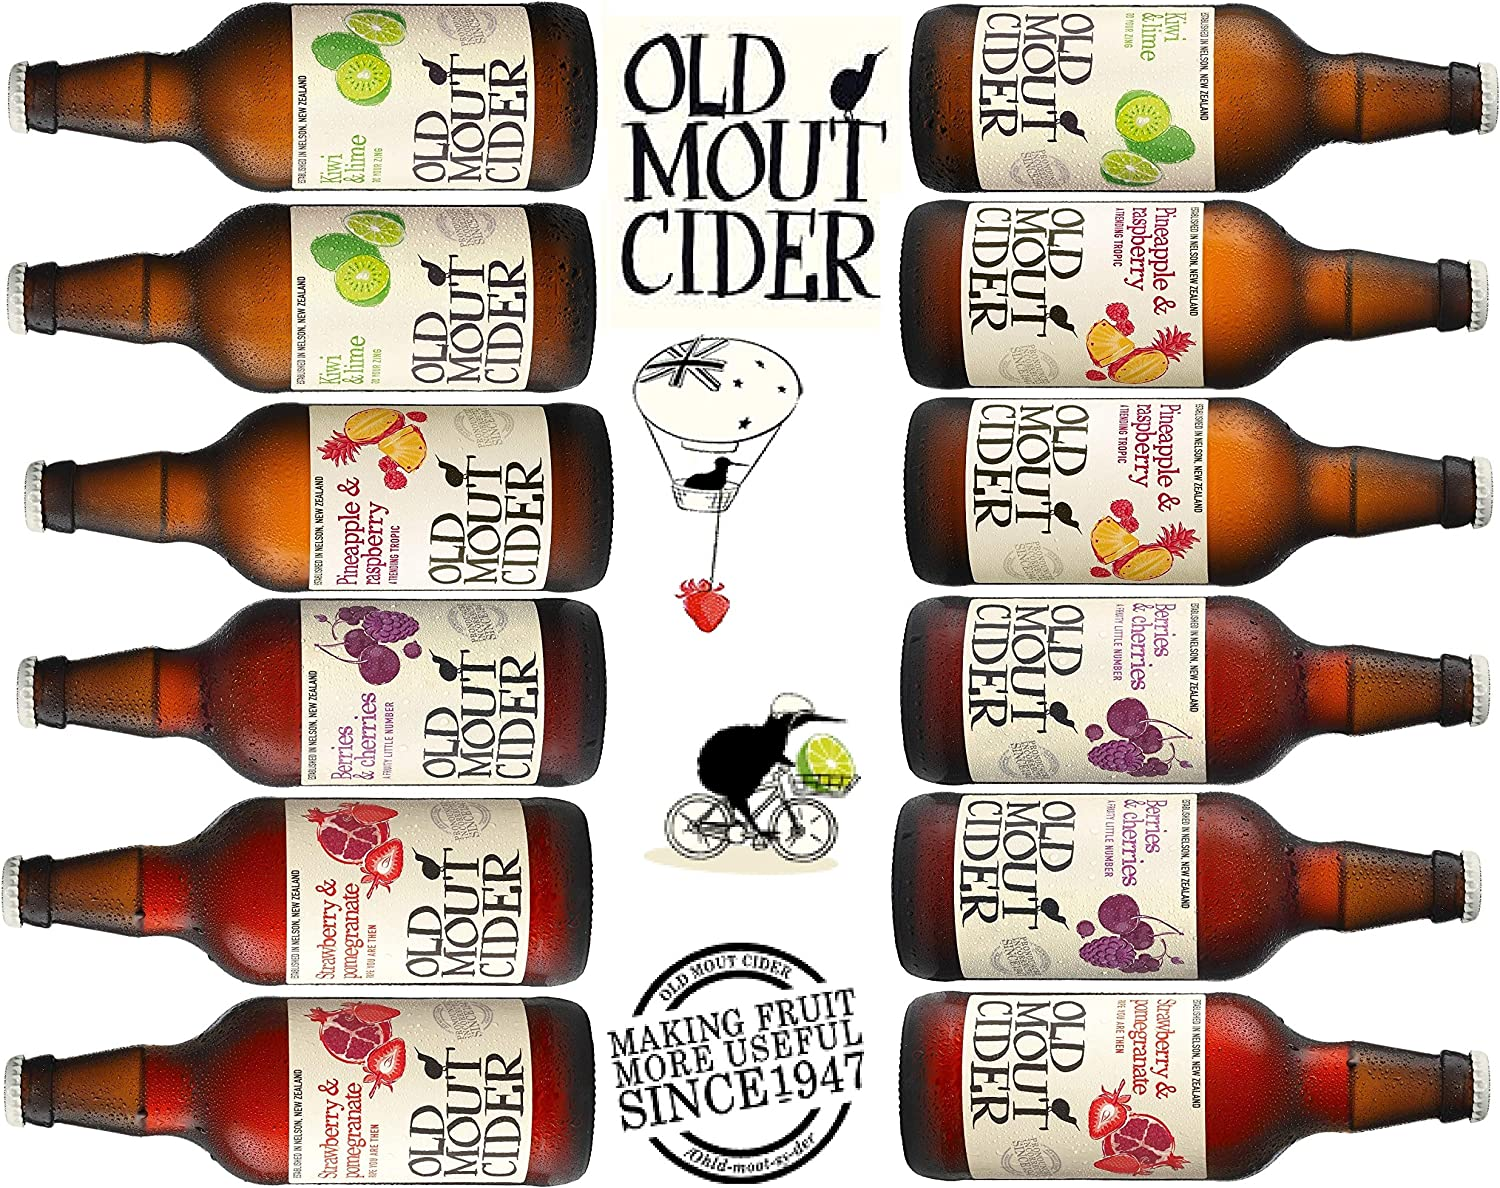 Old Mout Mixed Cider Case - 12 X 500ml